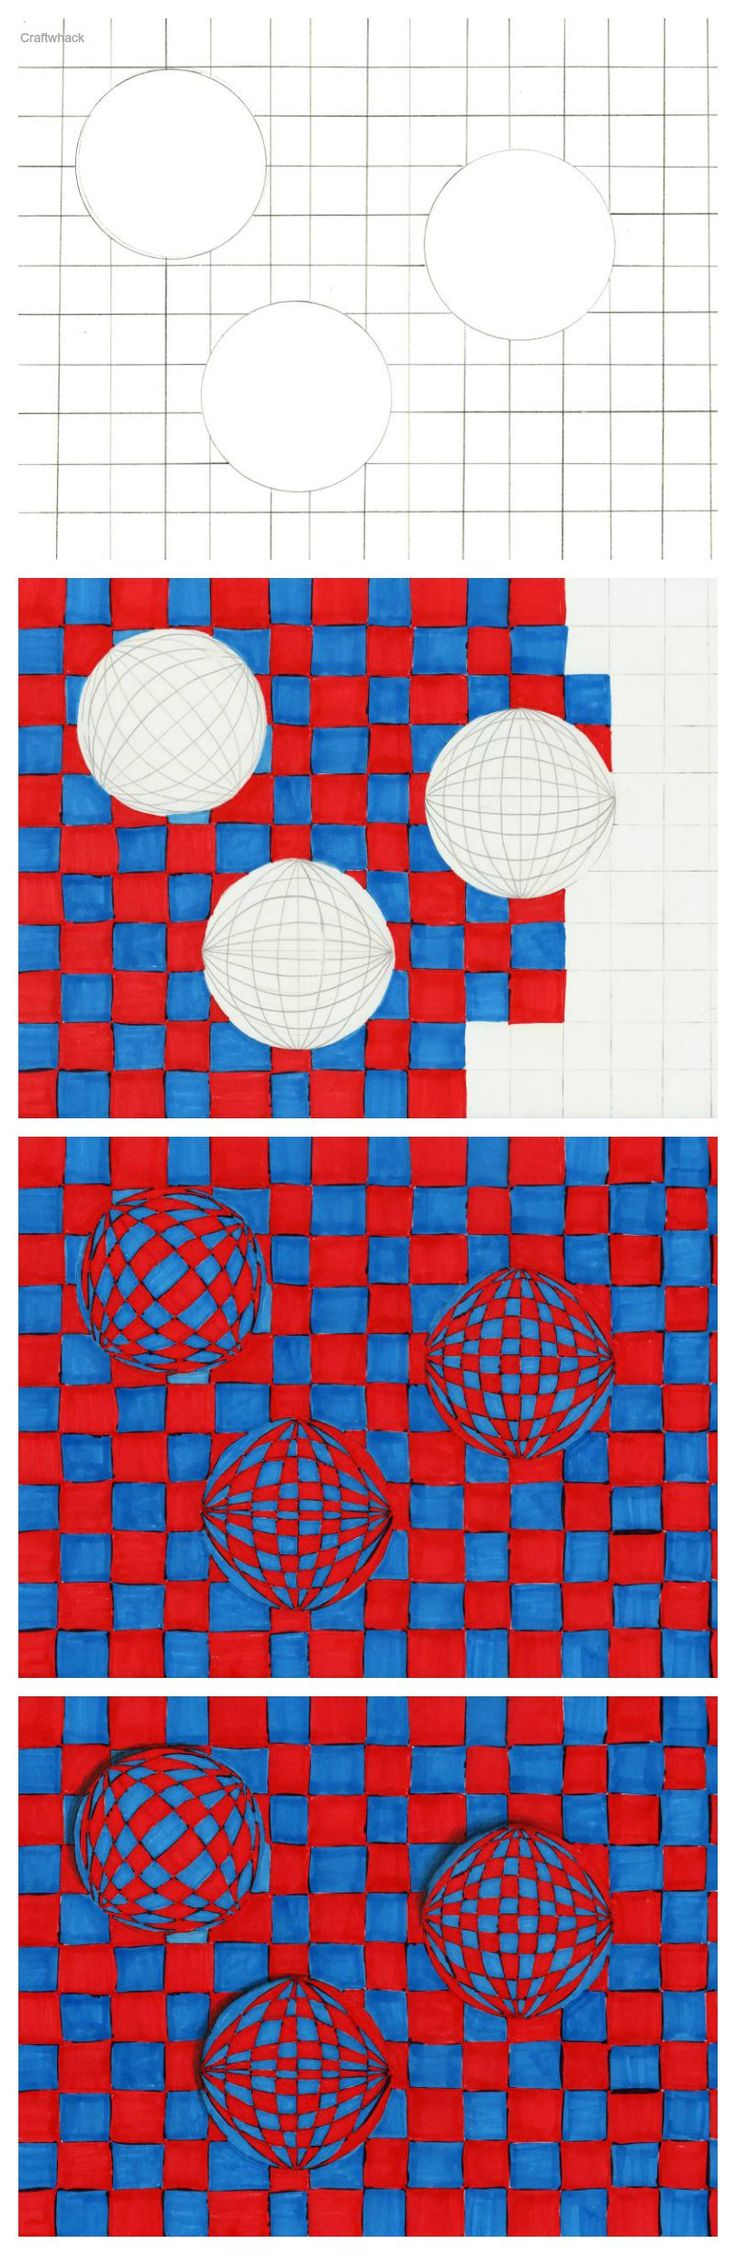 Op art uses color to create - Cool Op Art Sphere Drawings